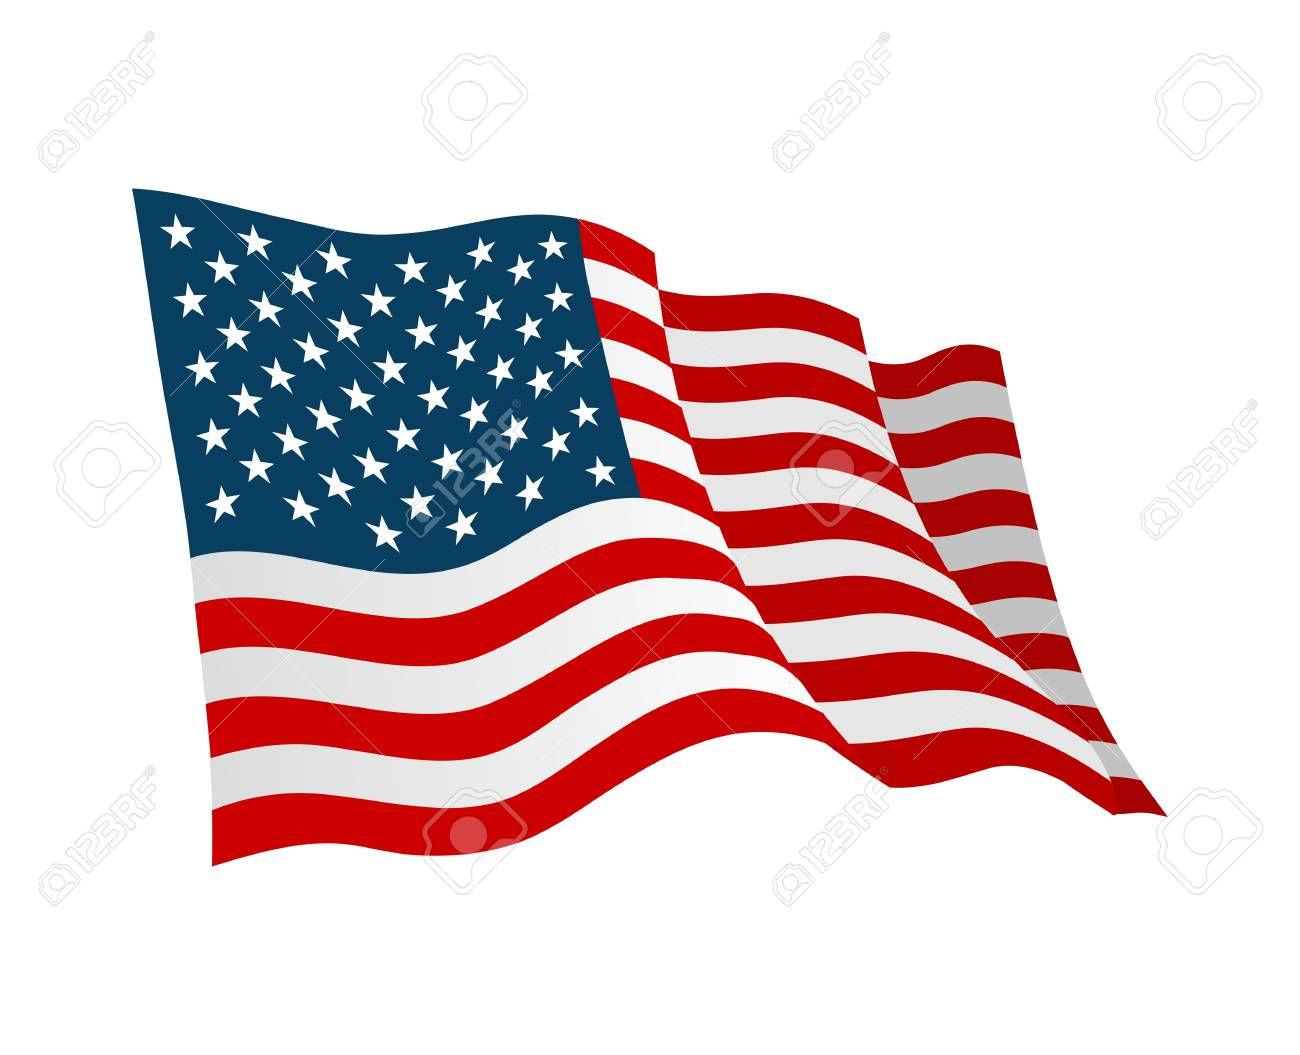 American flag. Vector flat color illustration isolated on white background. - 98641440